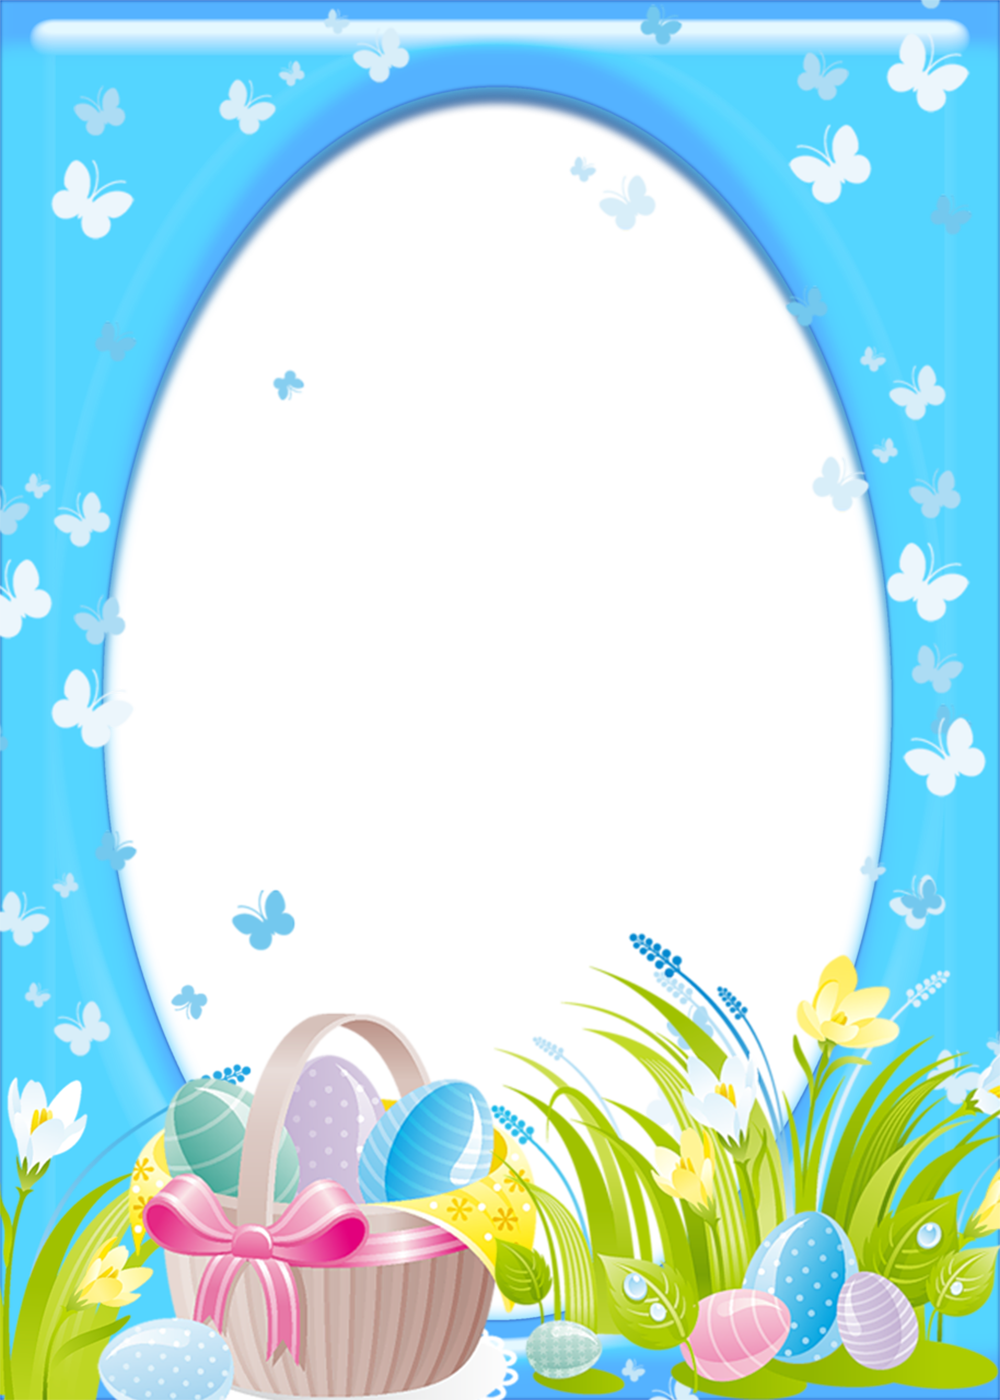 Easter clipart frames picture free download Easter Transparent PNG Frame | Gallery Yopriceville - High-Quality ... picture free download